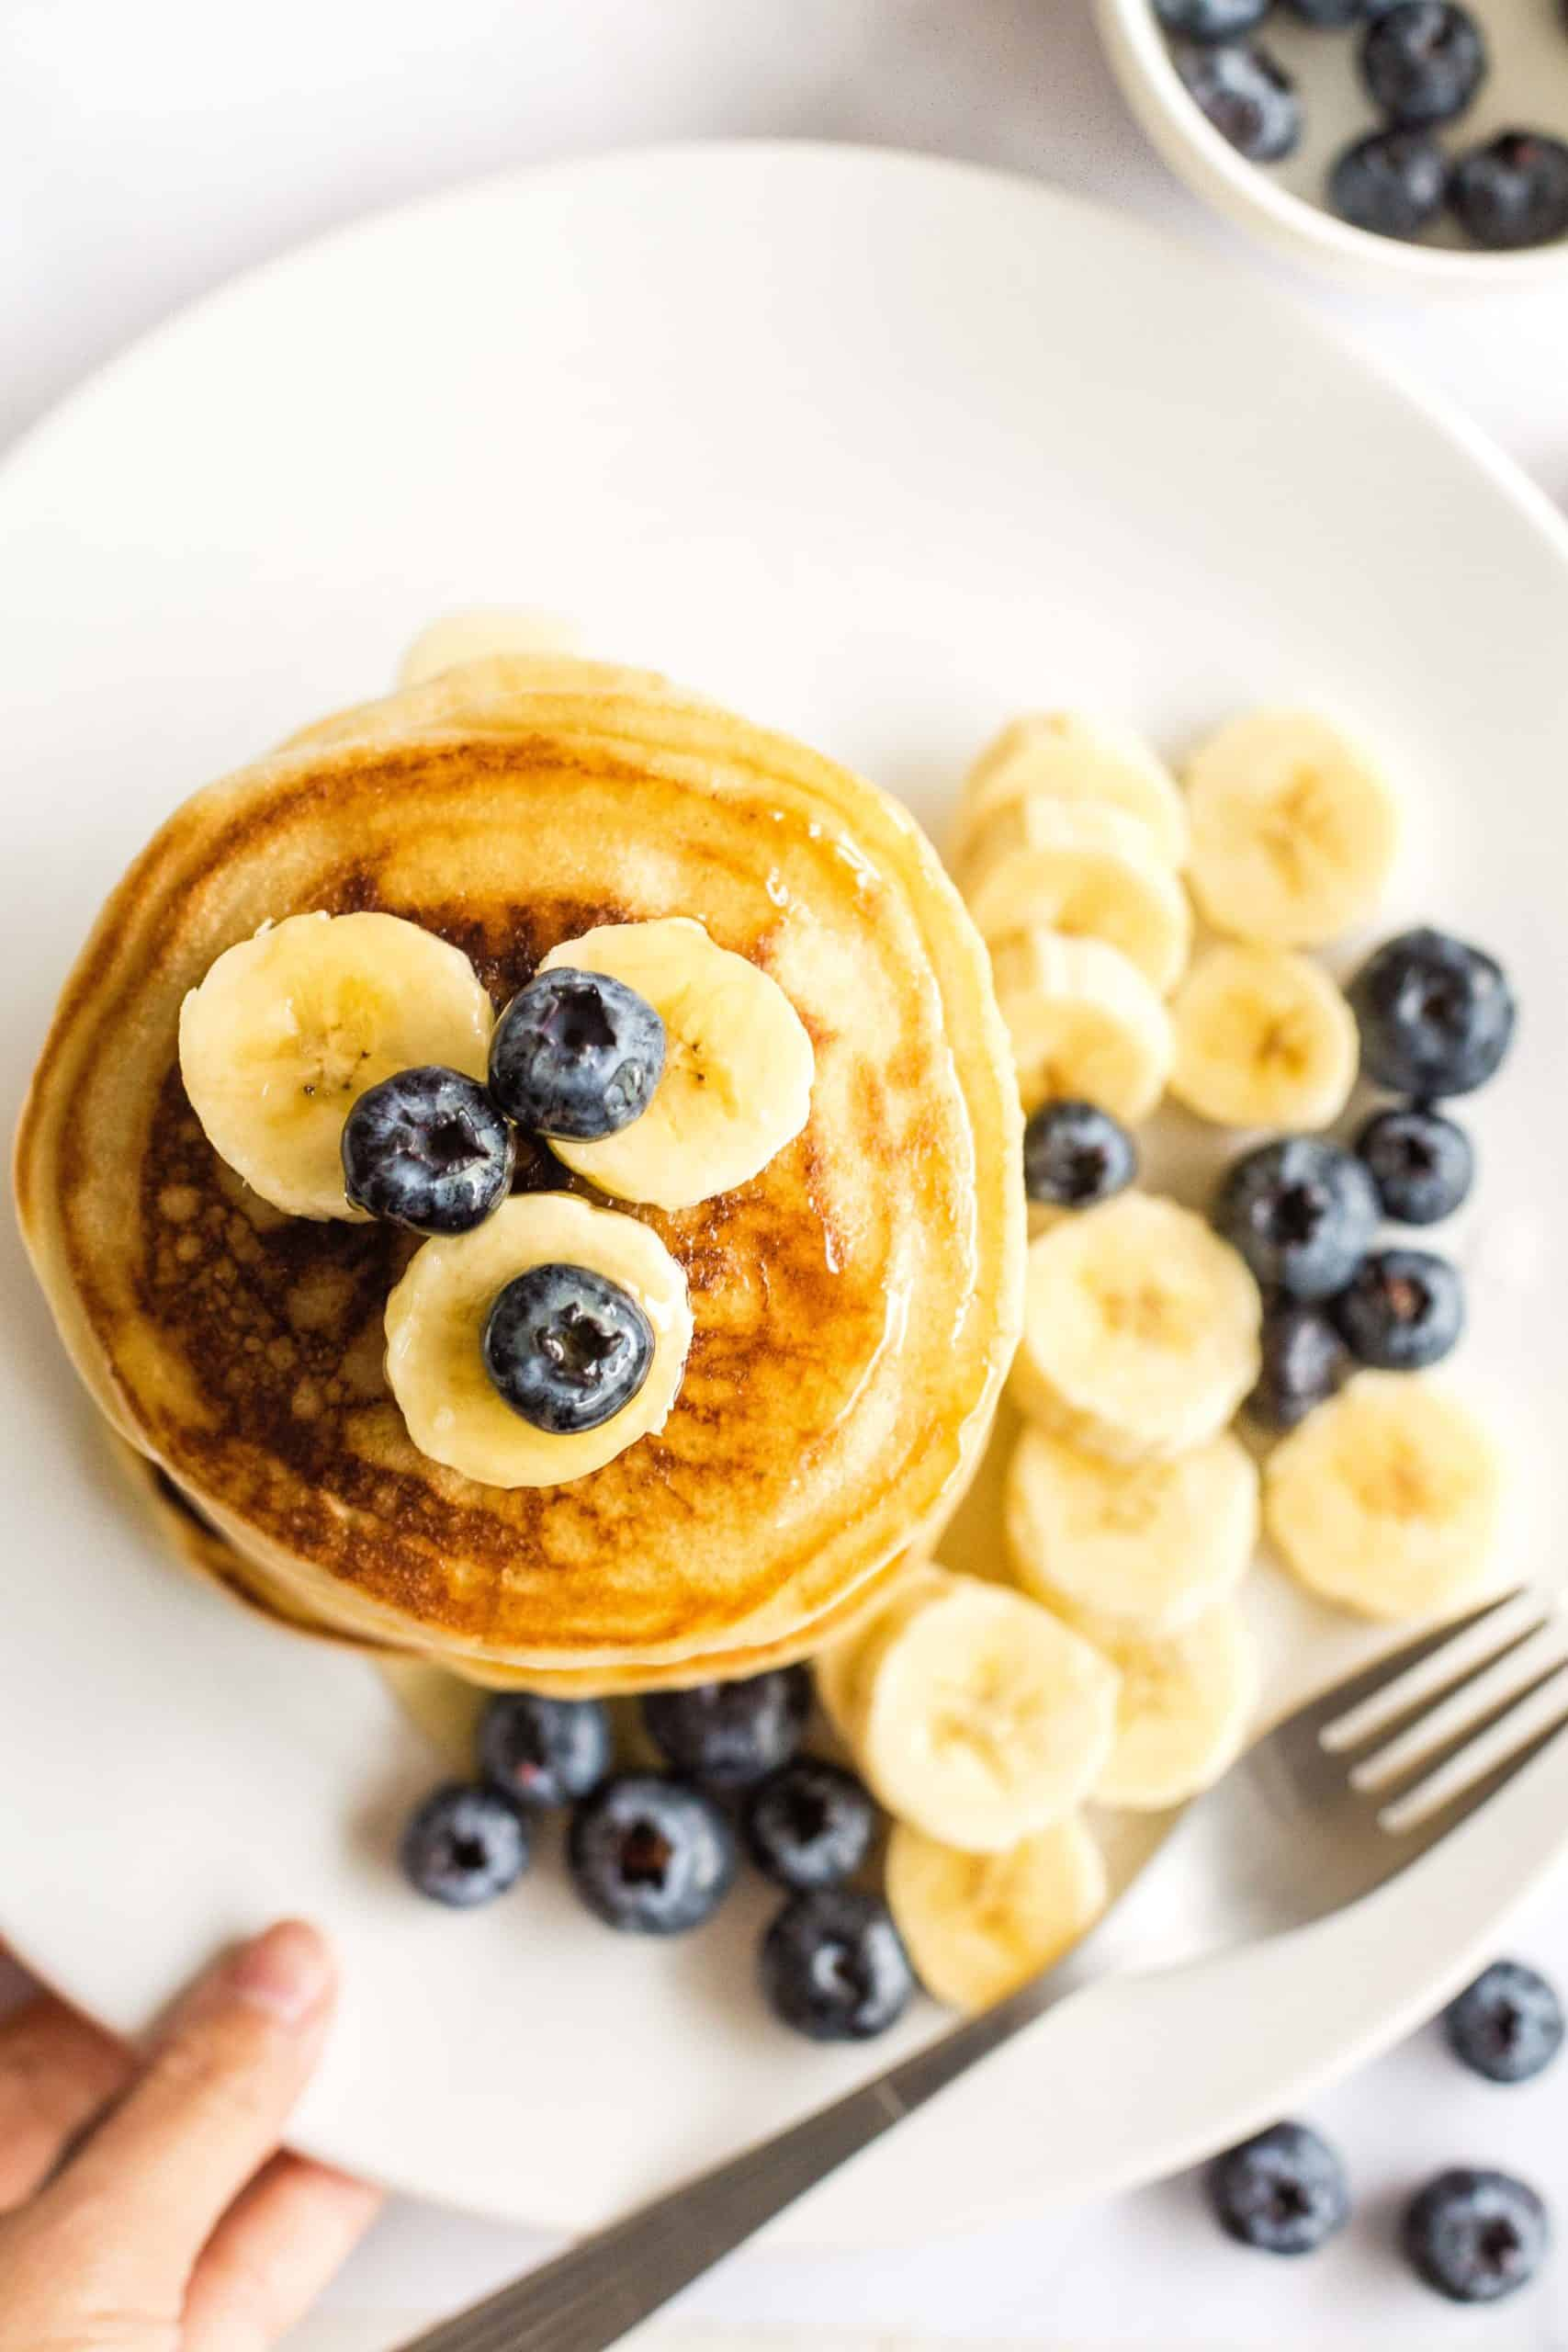 Gluten-free pancakes topped with blueberries on a plate.